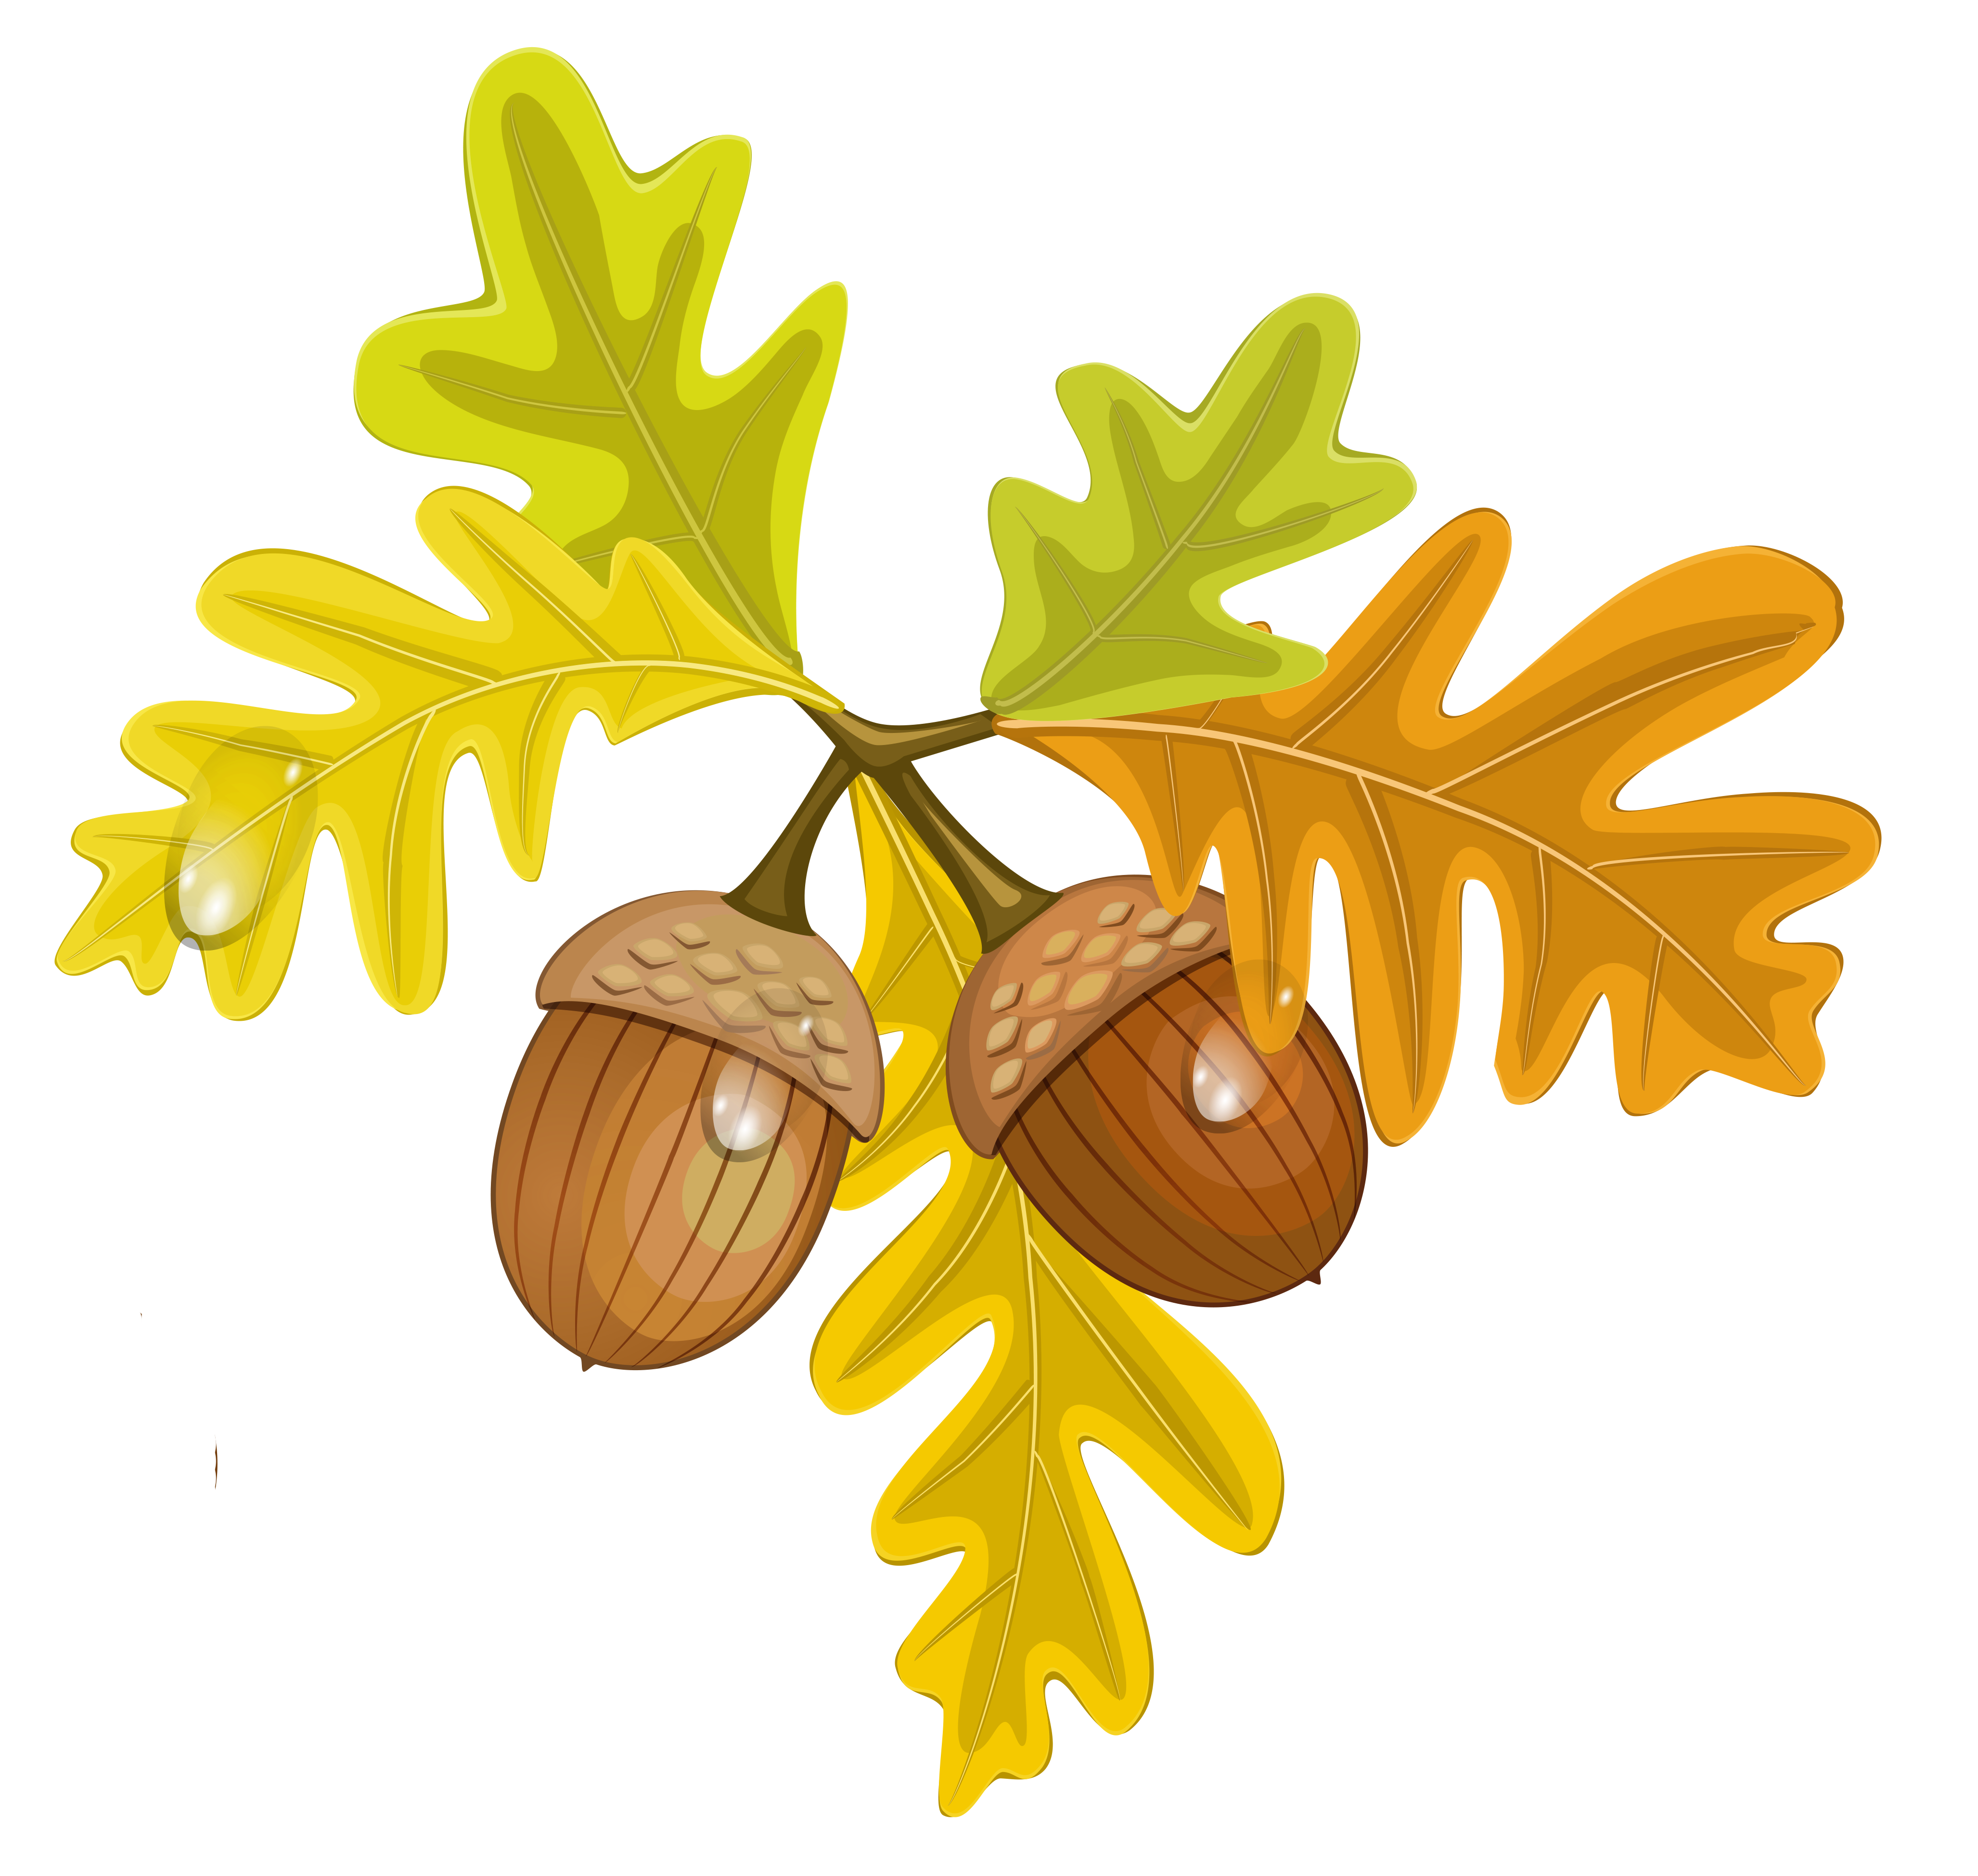 Acorn svg nut. Pin by kushalagarwal on